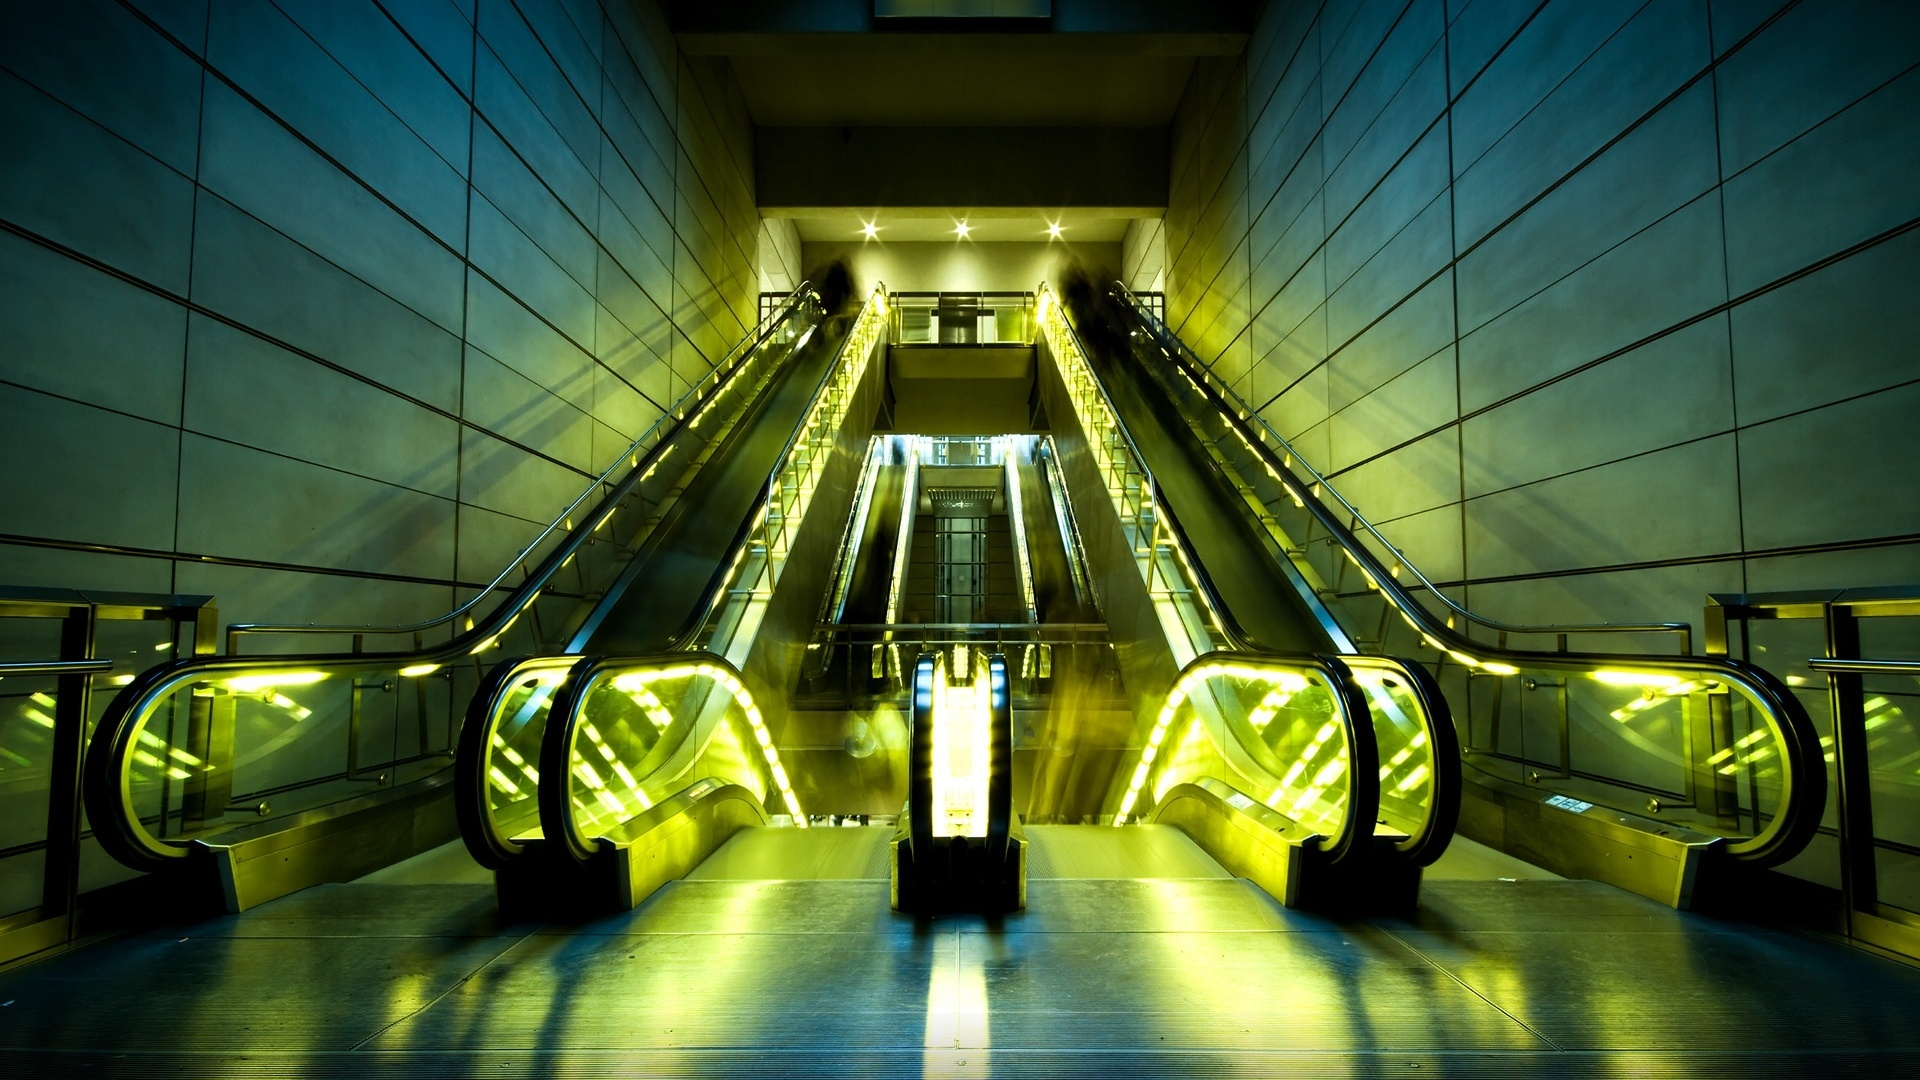 1920x1080 Escalators